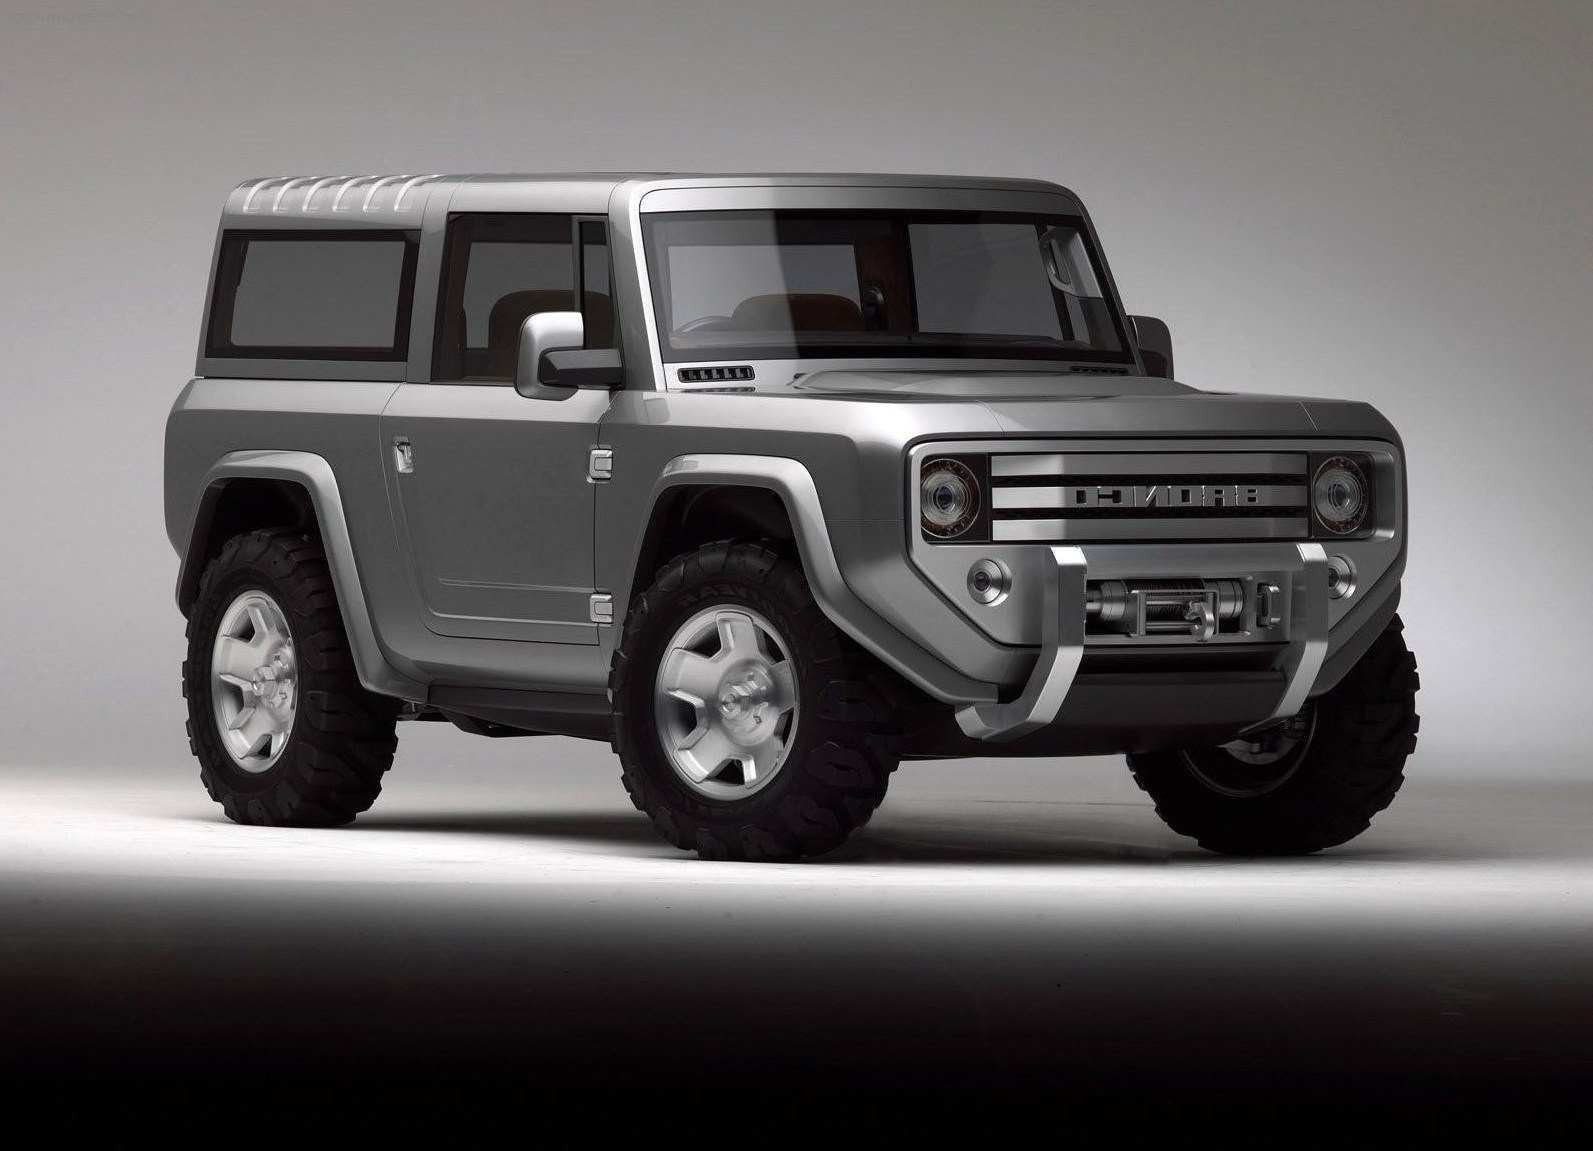 63 The Best 2020 Ford Bronco Wallpaper Prices